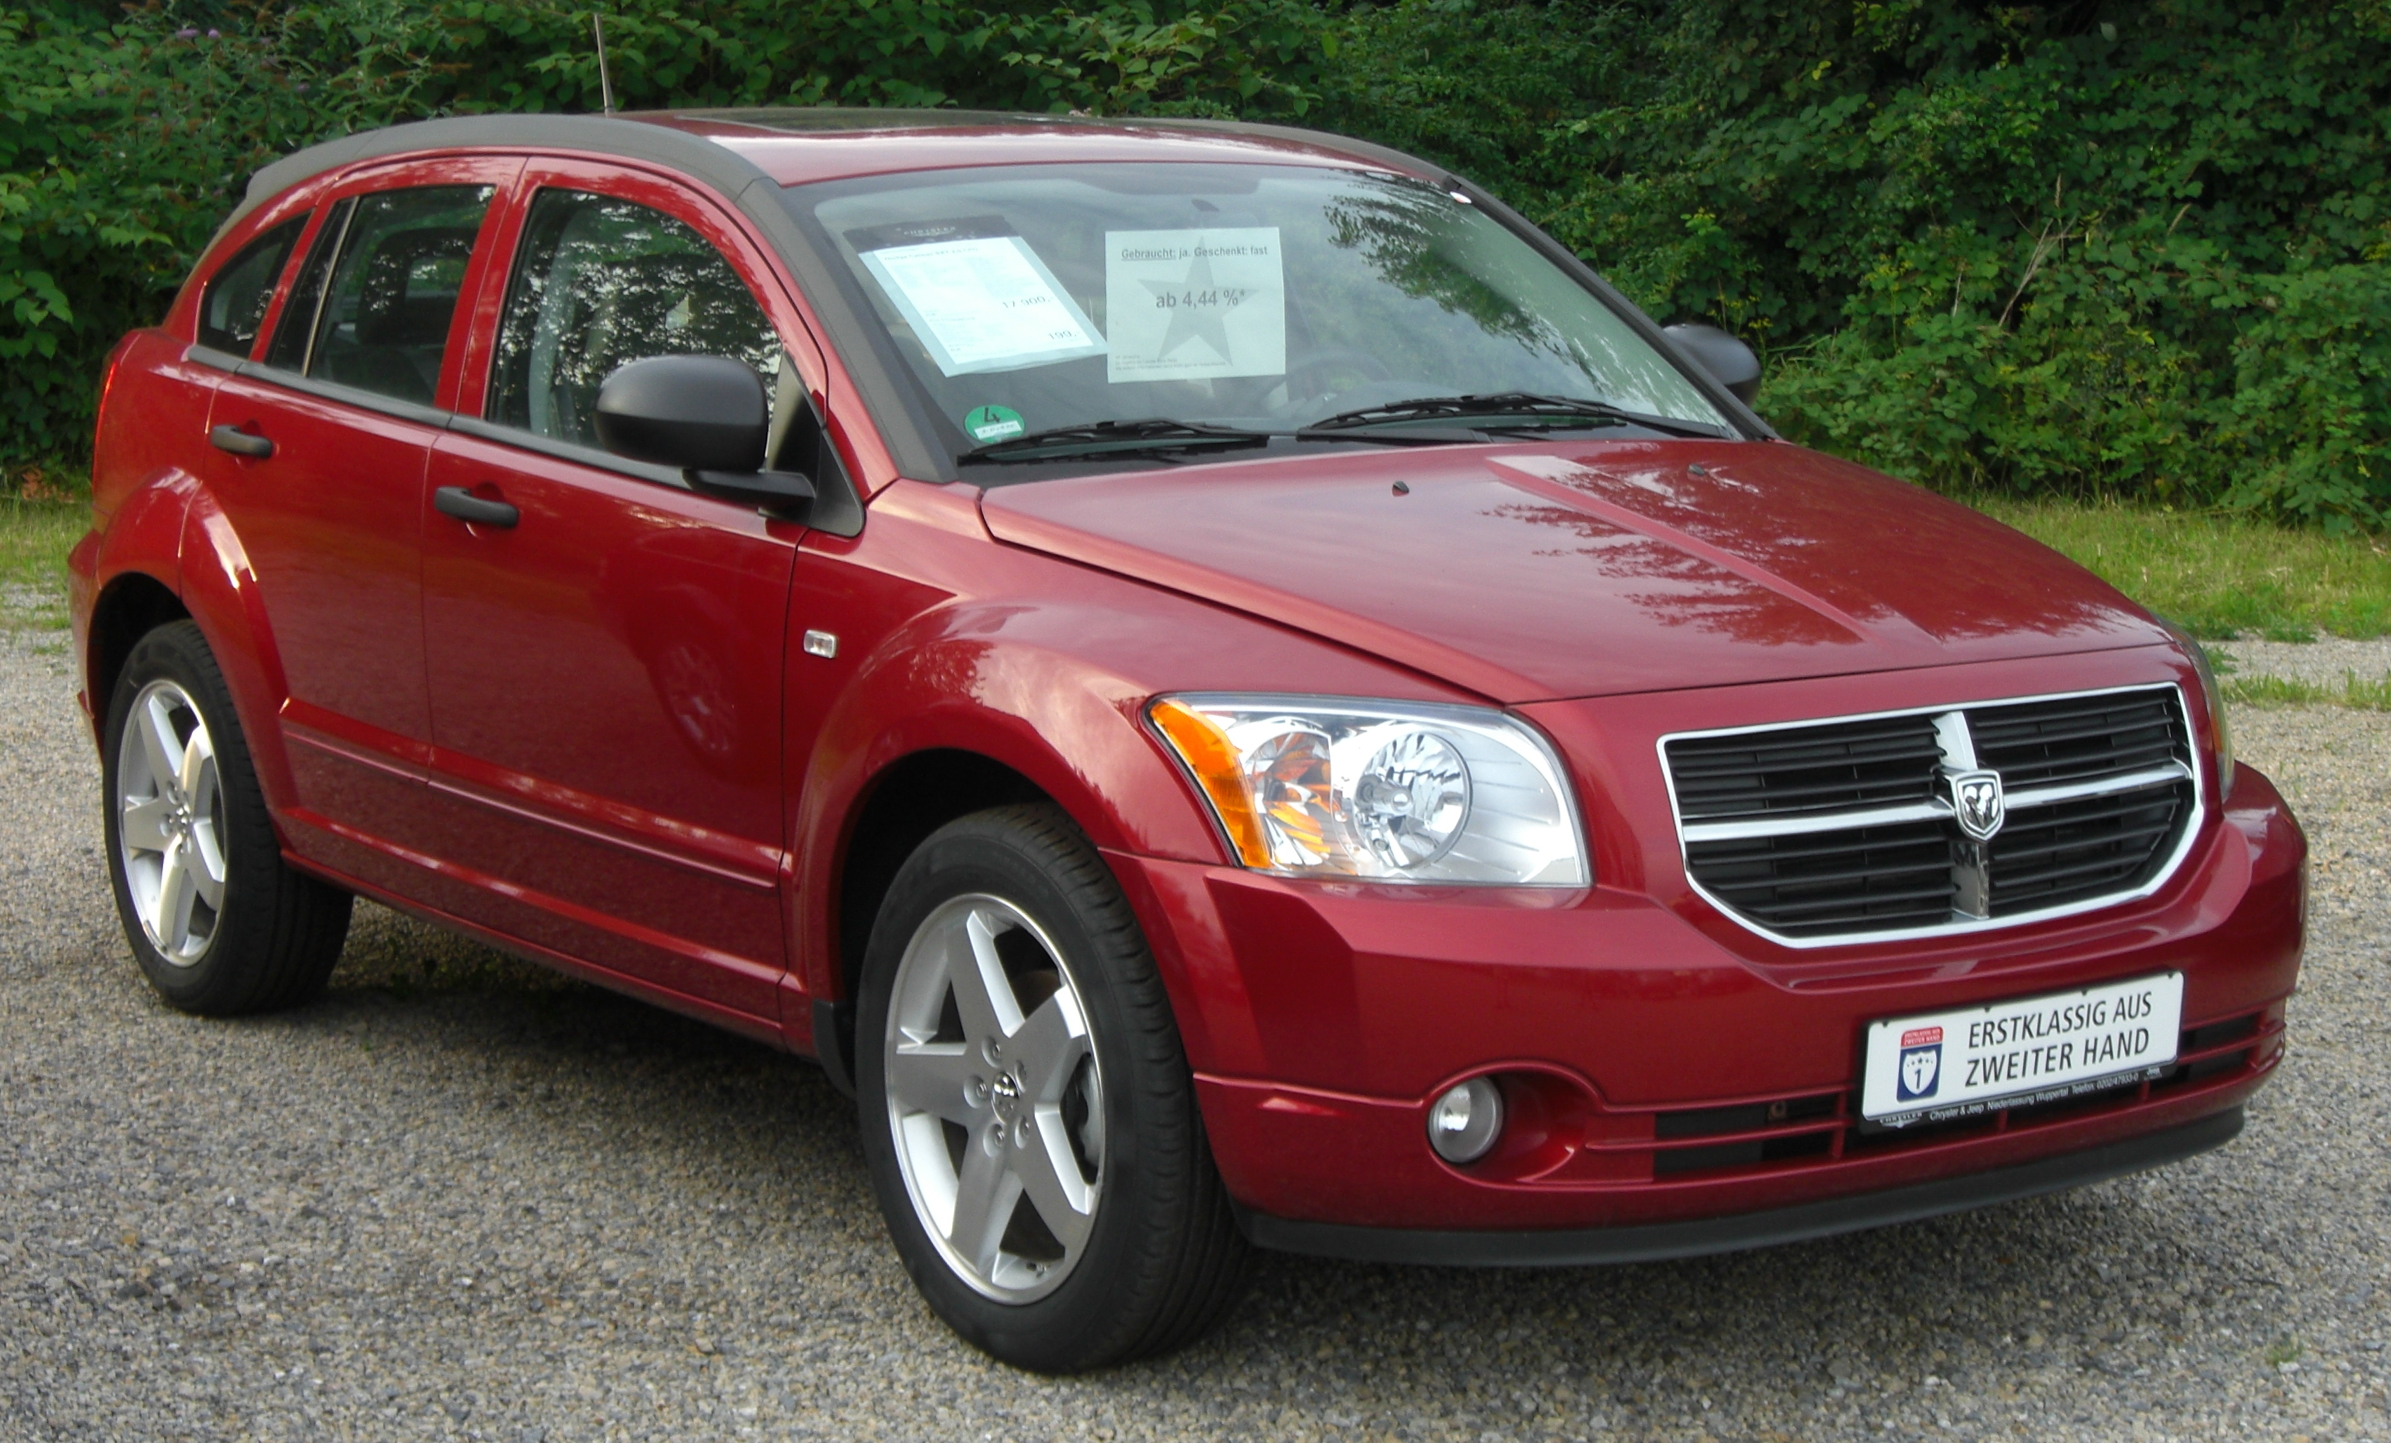 dodge caliber images #5